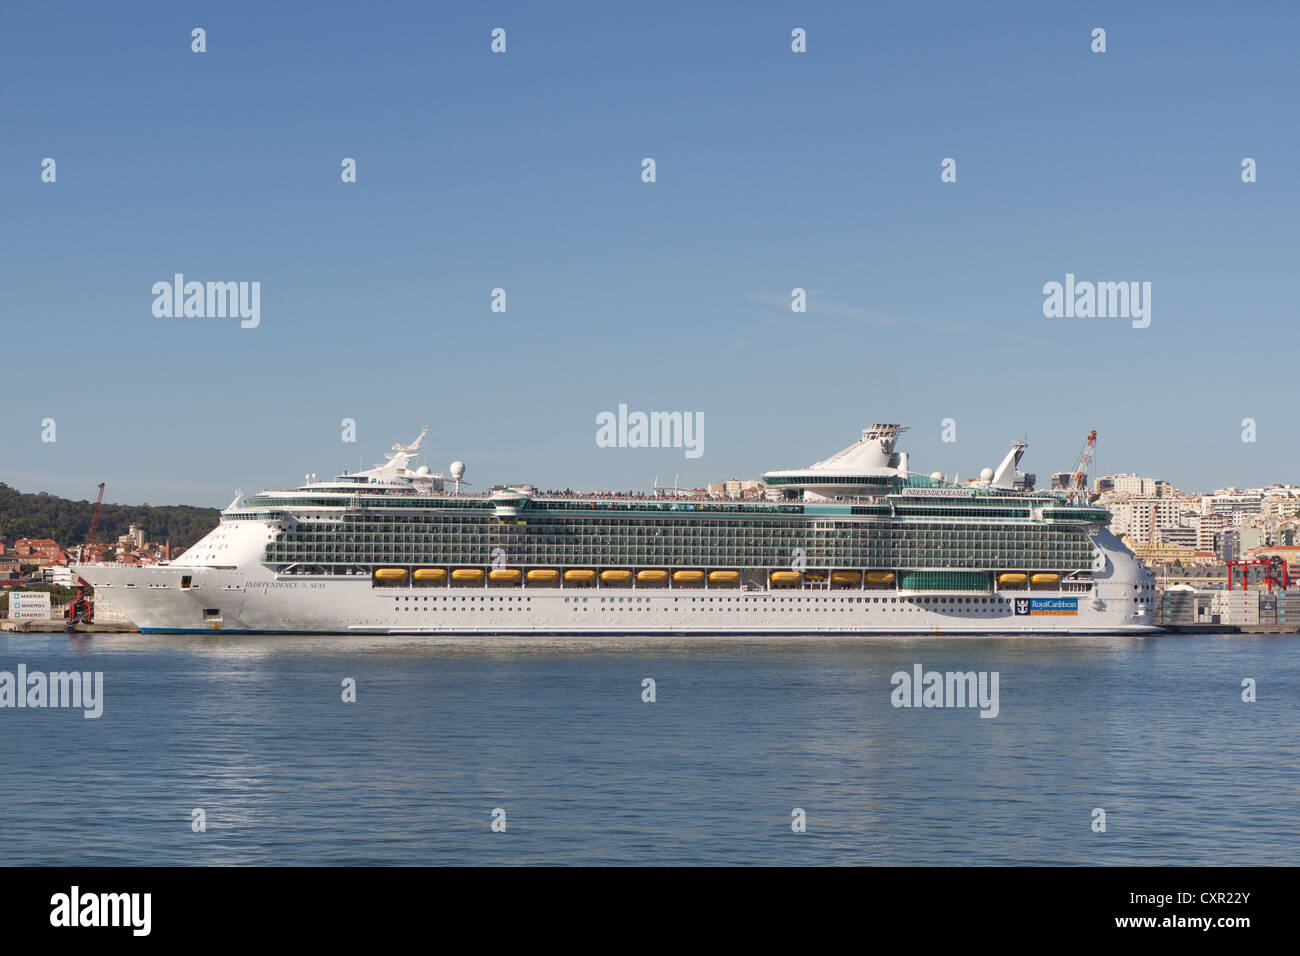 Royal Caribbean Independence of the seas, the biggest cruise ship in the world in Lisbon - Stock Image